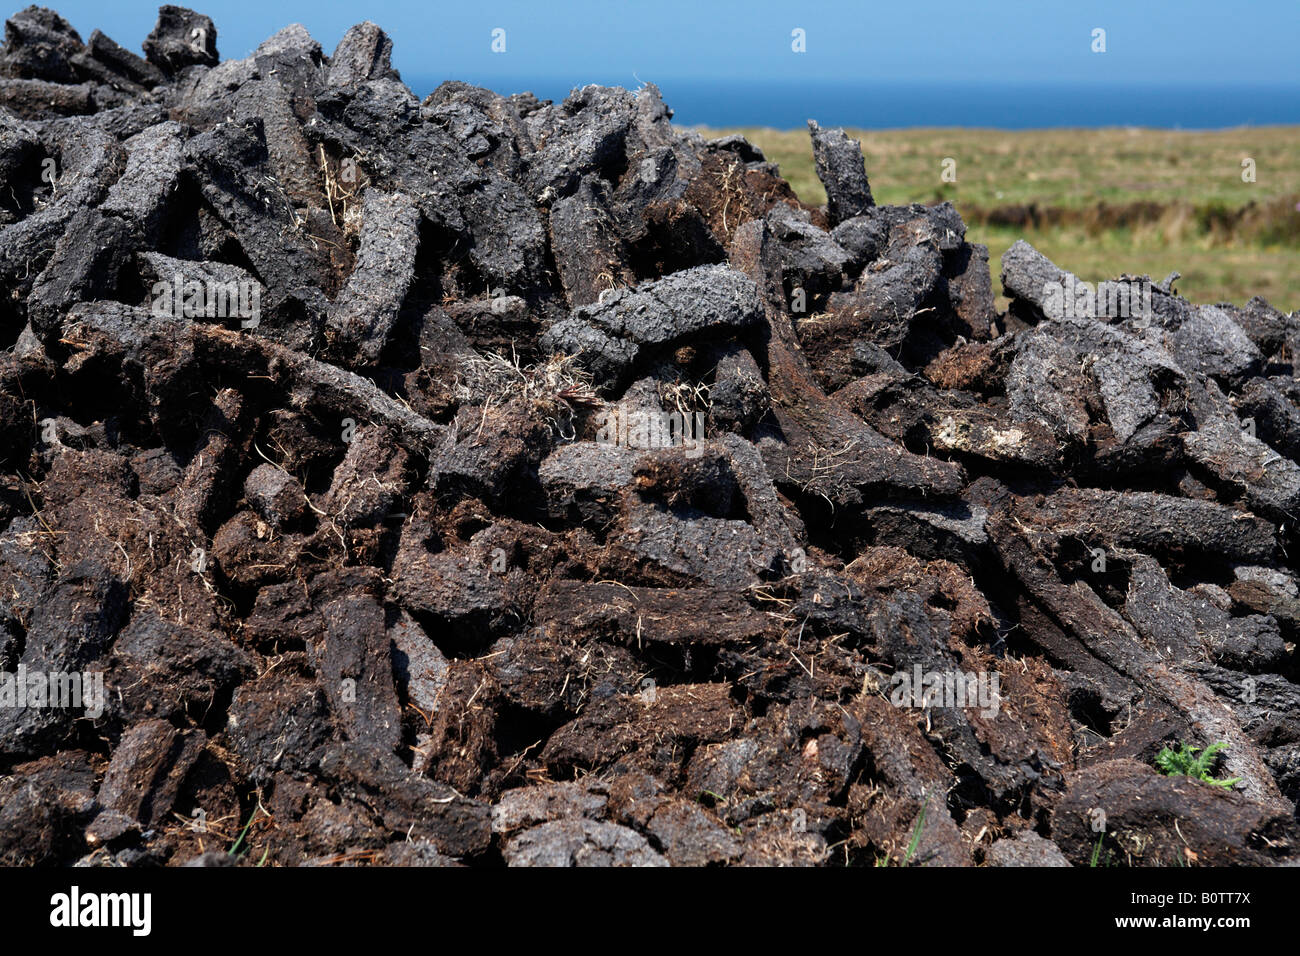 pile of cut turf peat drying in the sun to be used as household fuel later in the year in county mayo republic of - Stock Image